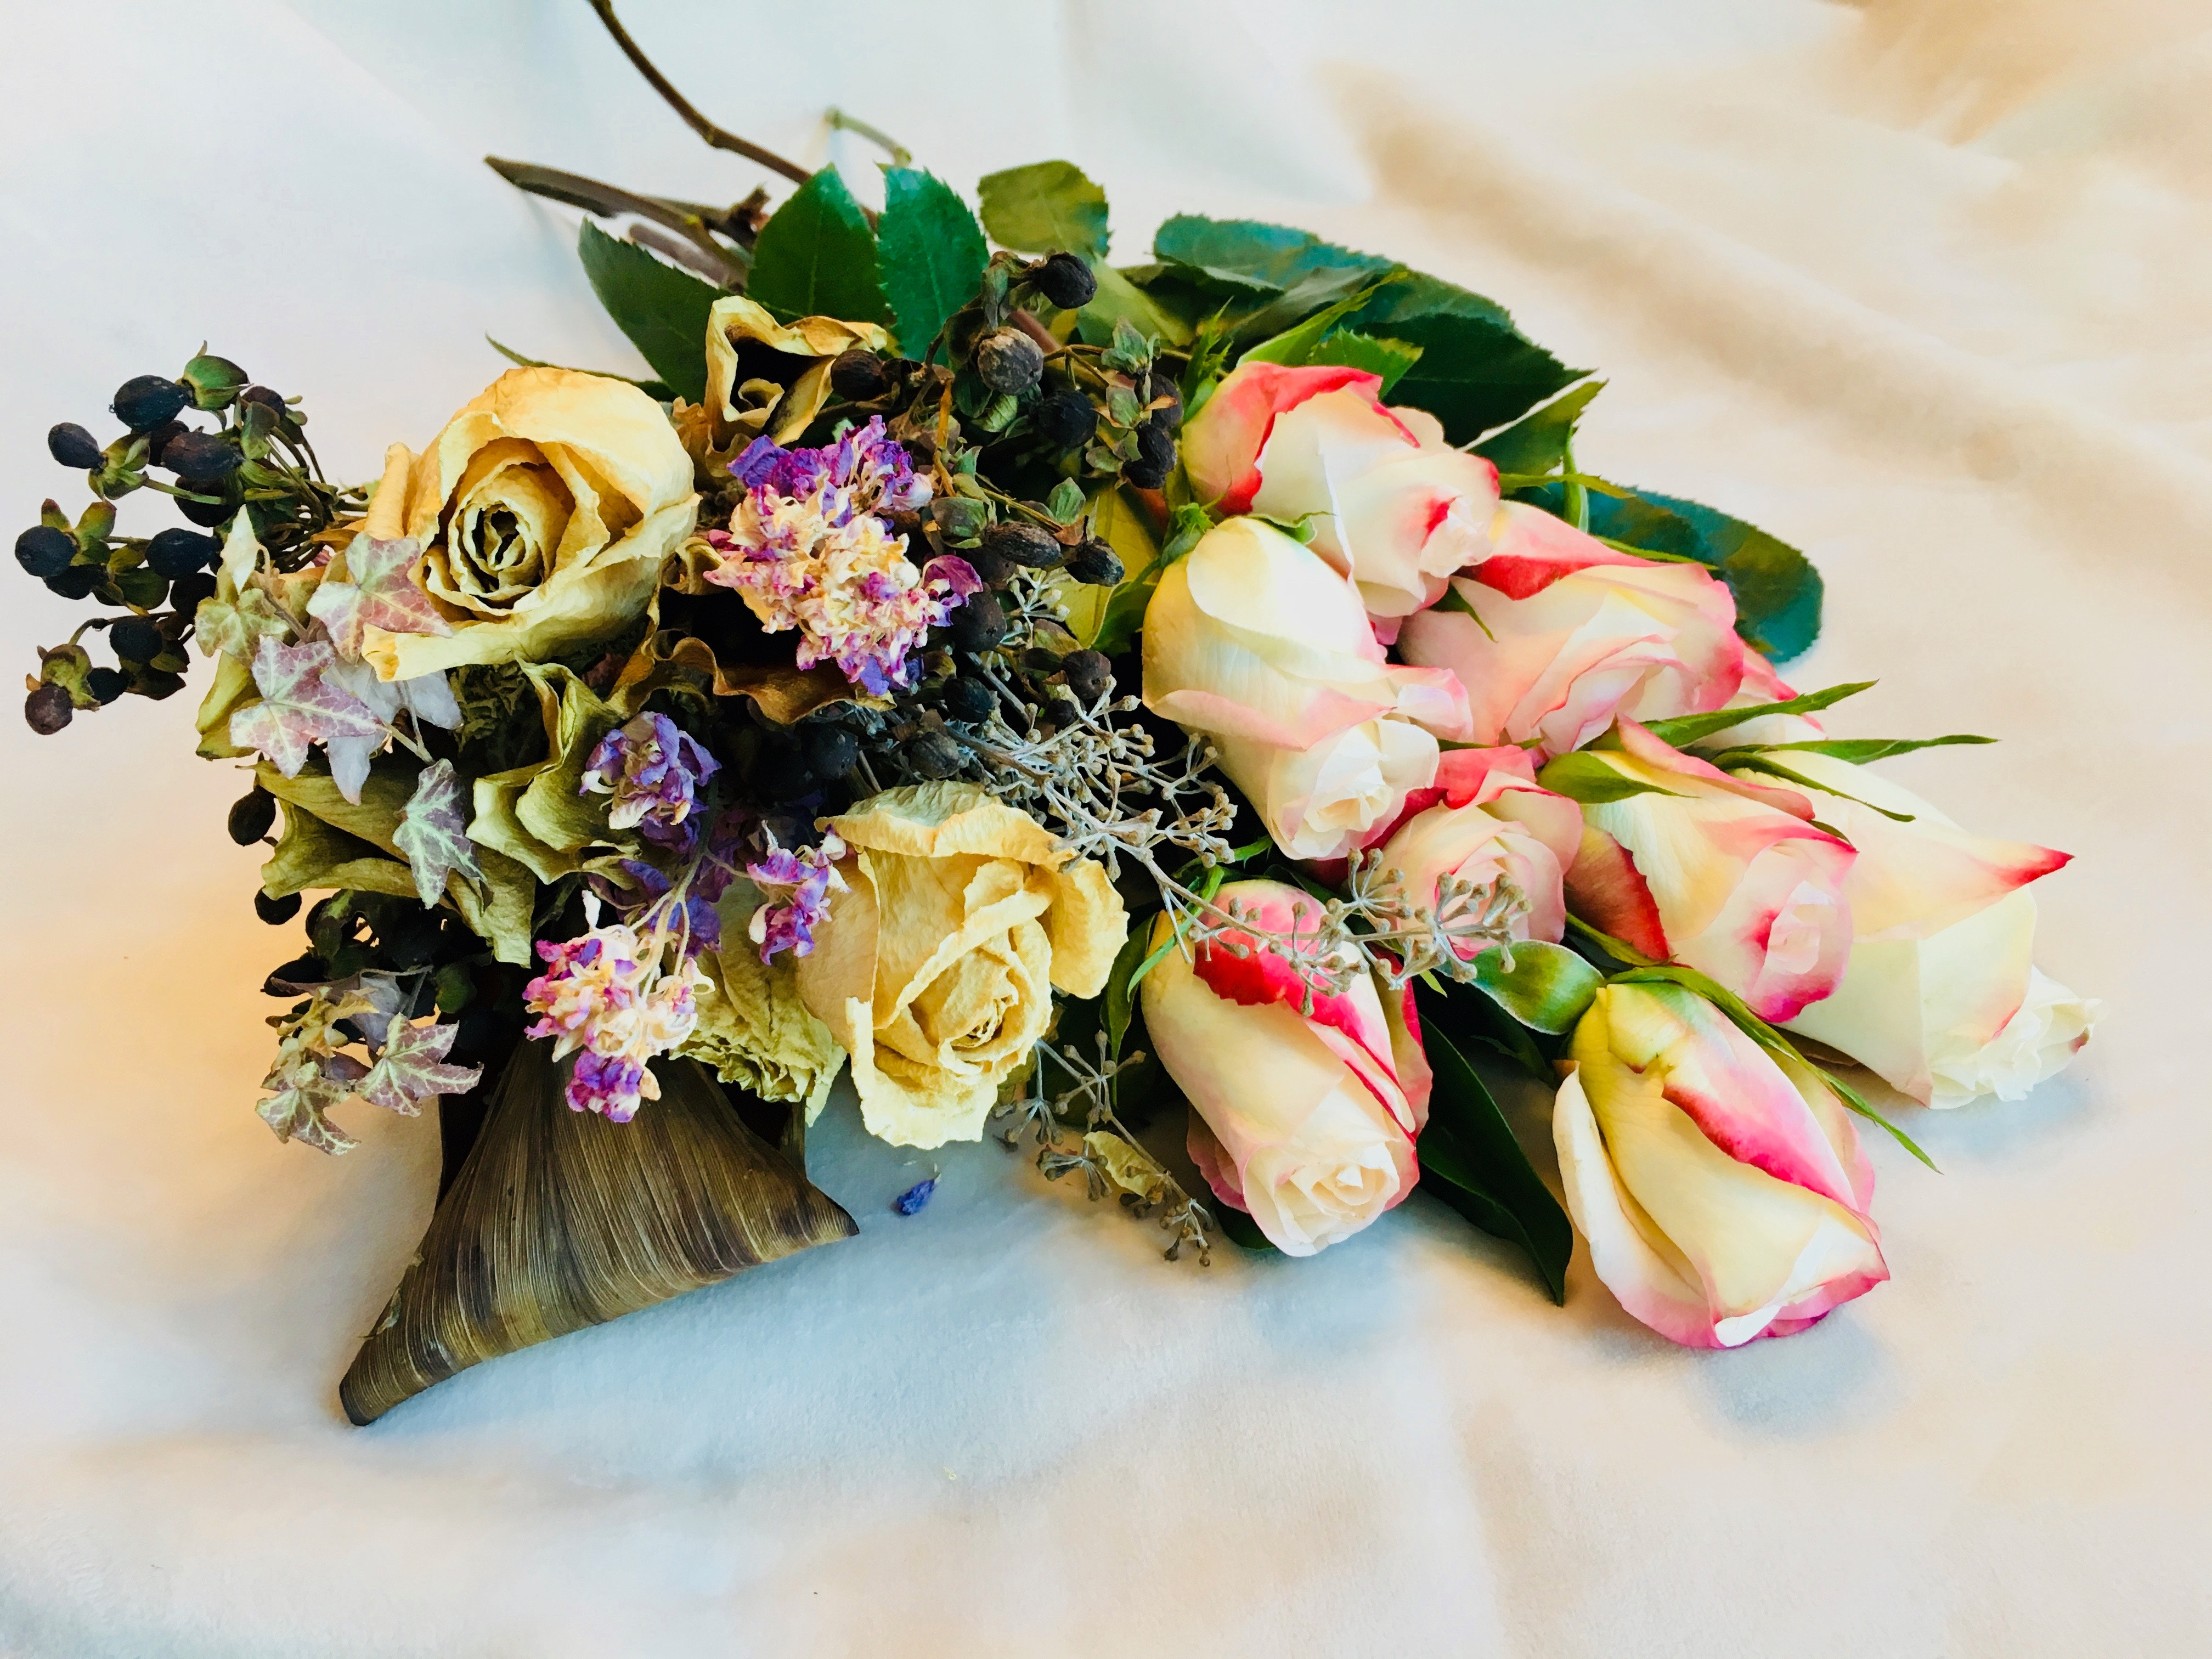 Free stock photo of dried flowers with fresh roses, flower bouquet, old and new